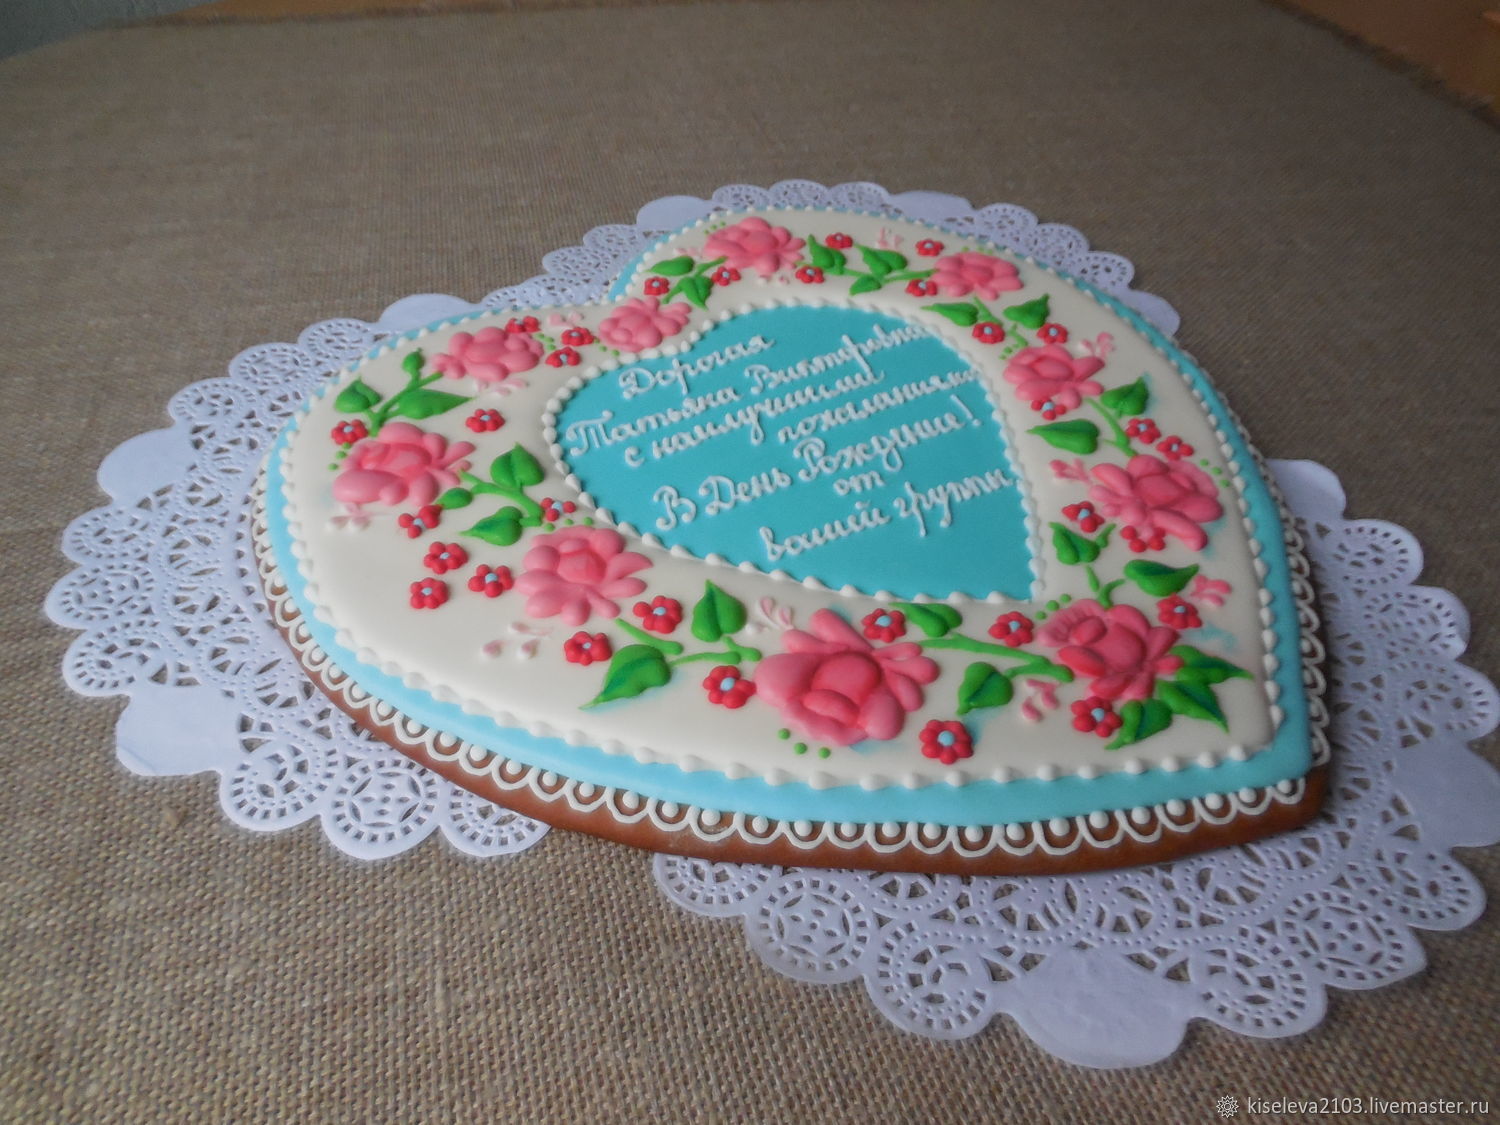 A Cake On A Birthday 30 Cm Gift Shop Online On Livemaster With